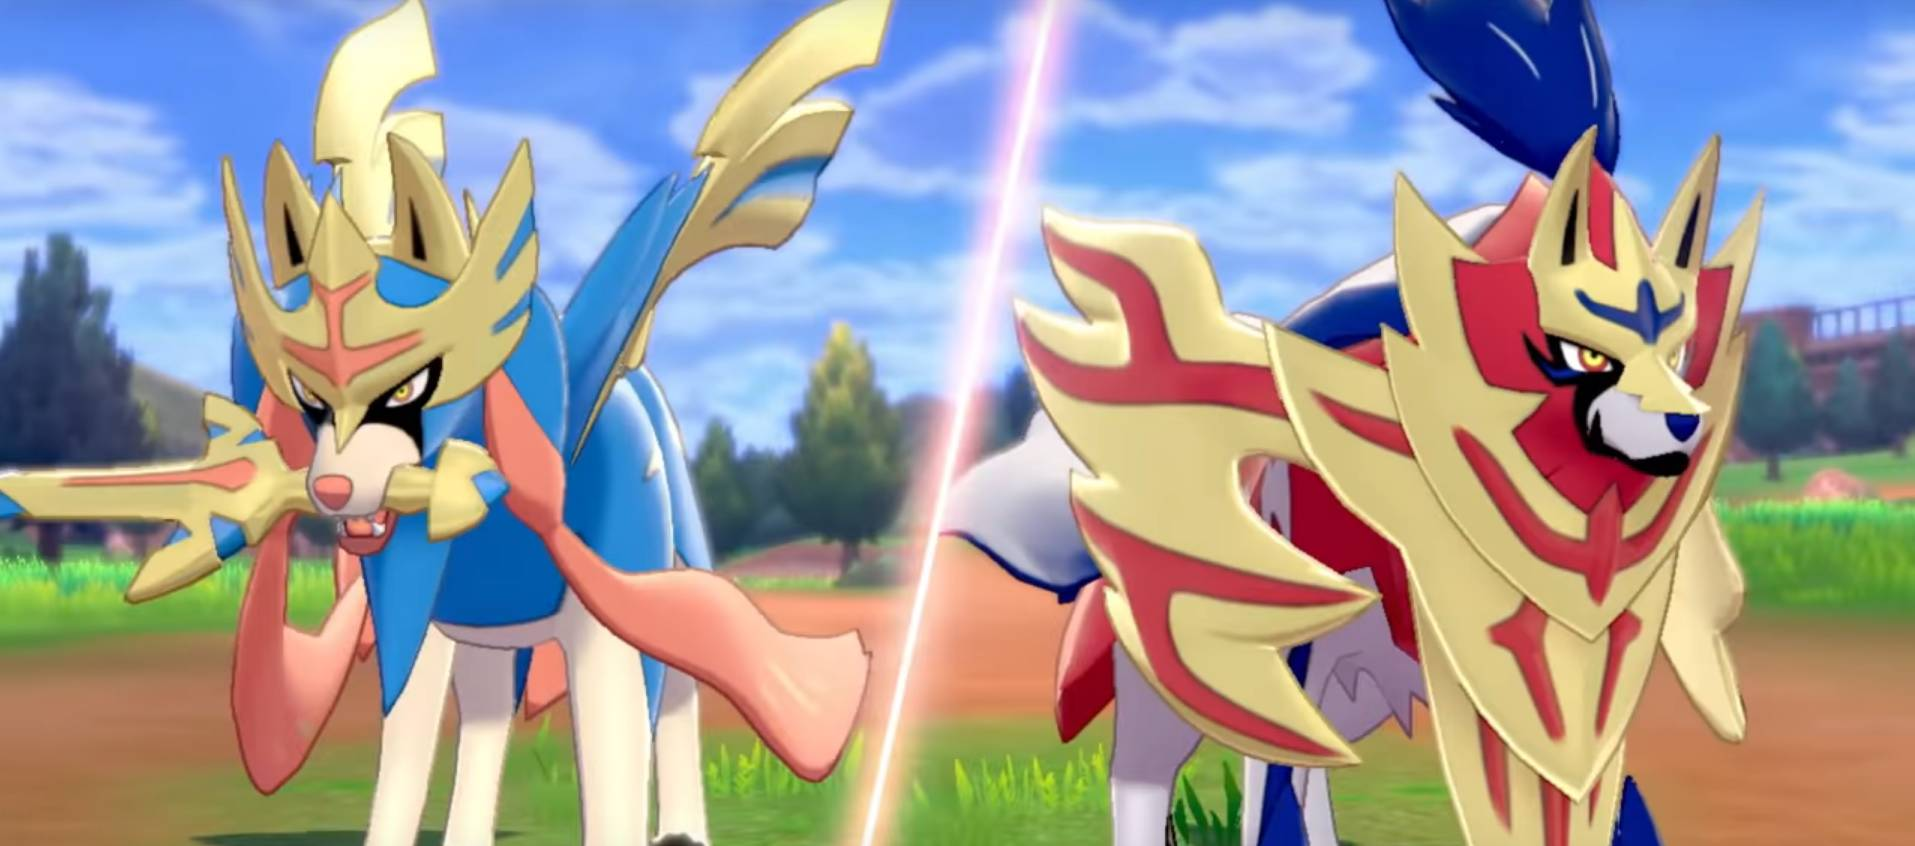 Pokémon Sword and Shield Prepares For Launch With New Japanese Trailers And Cafe Menu